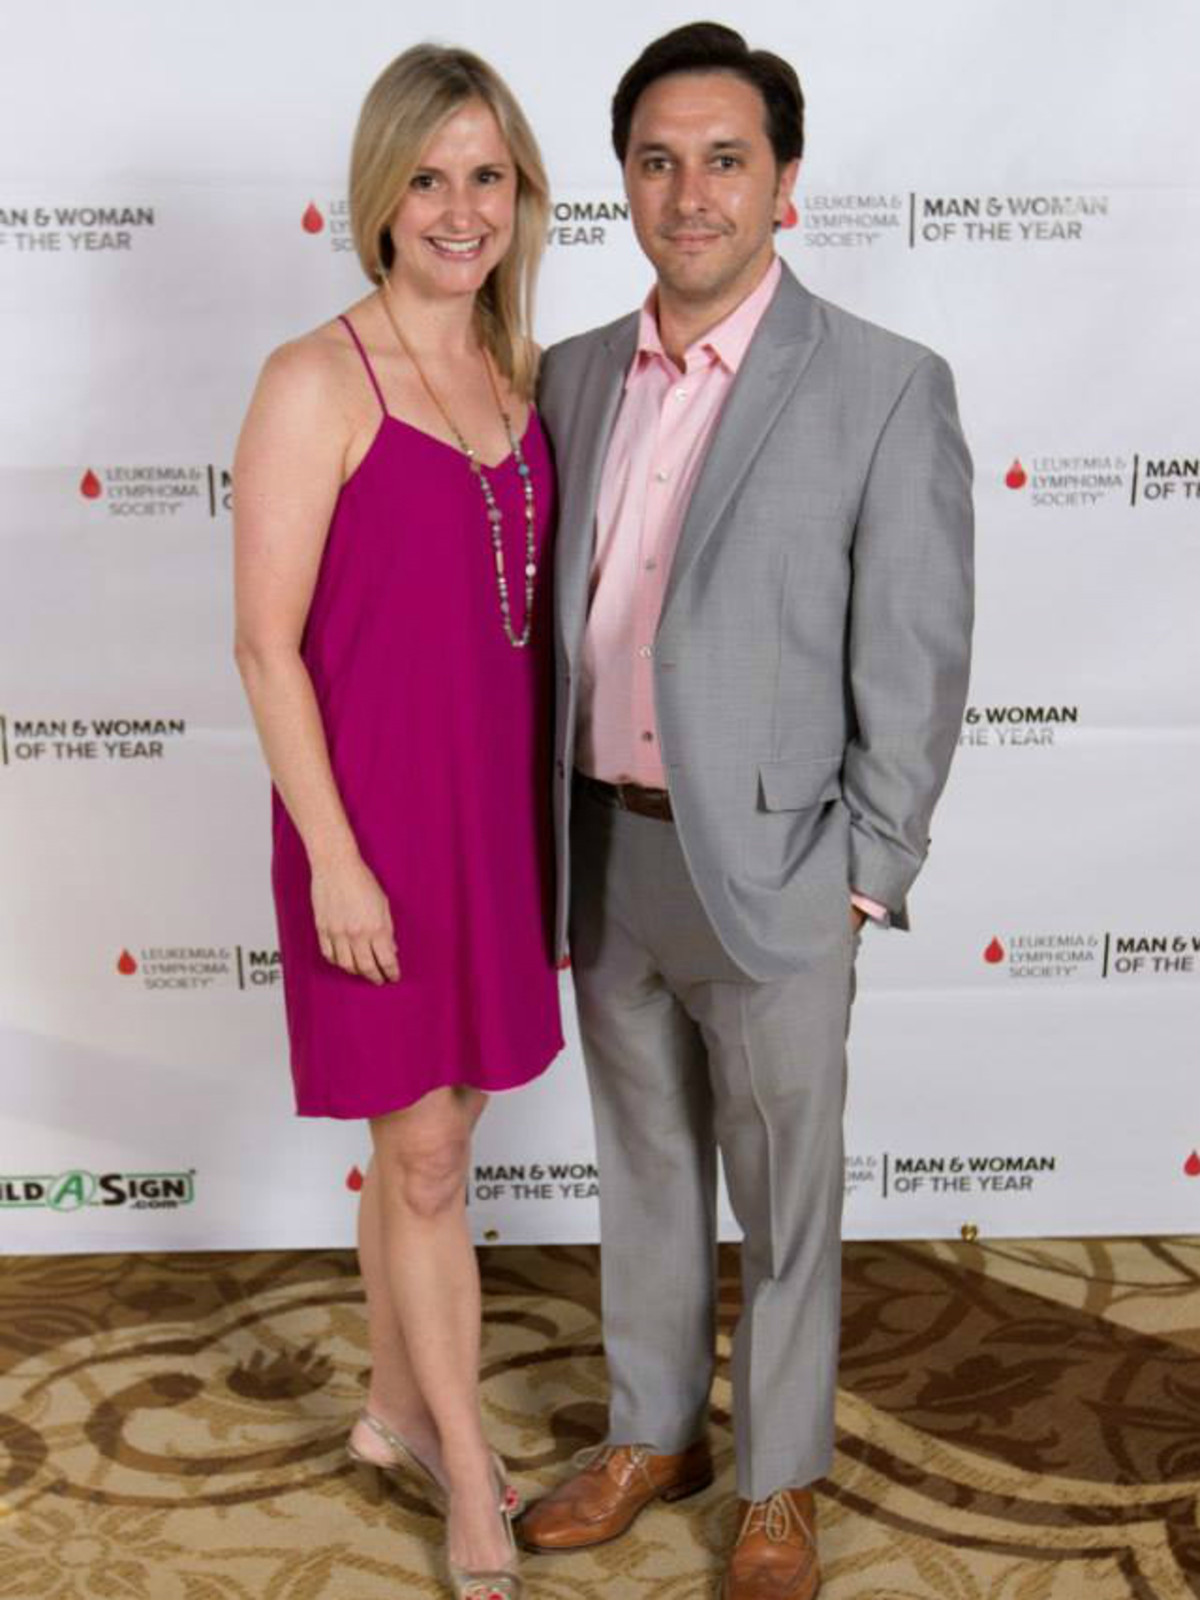 Leukemia & Lymphoma Society's Man & Woman of the Year Gala_Lacey Appolito_Brett Appolito_2015